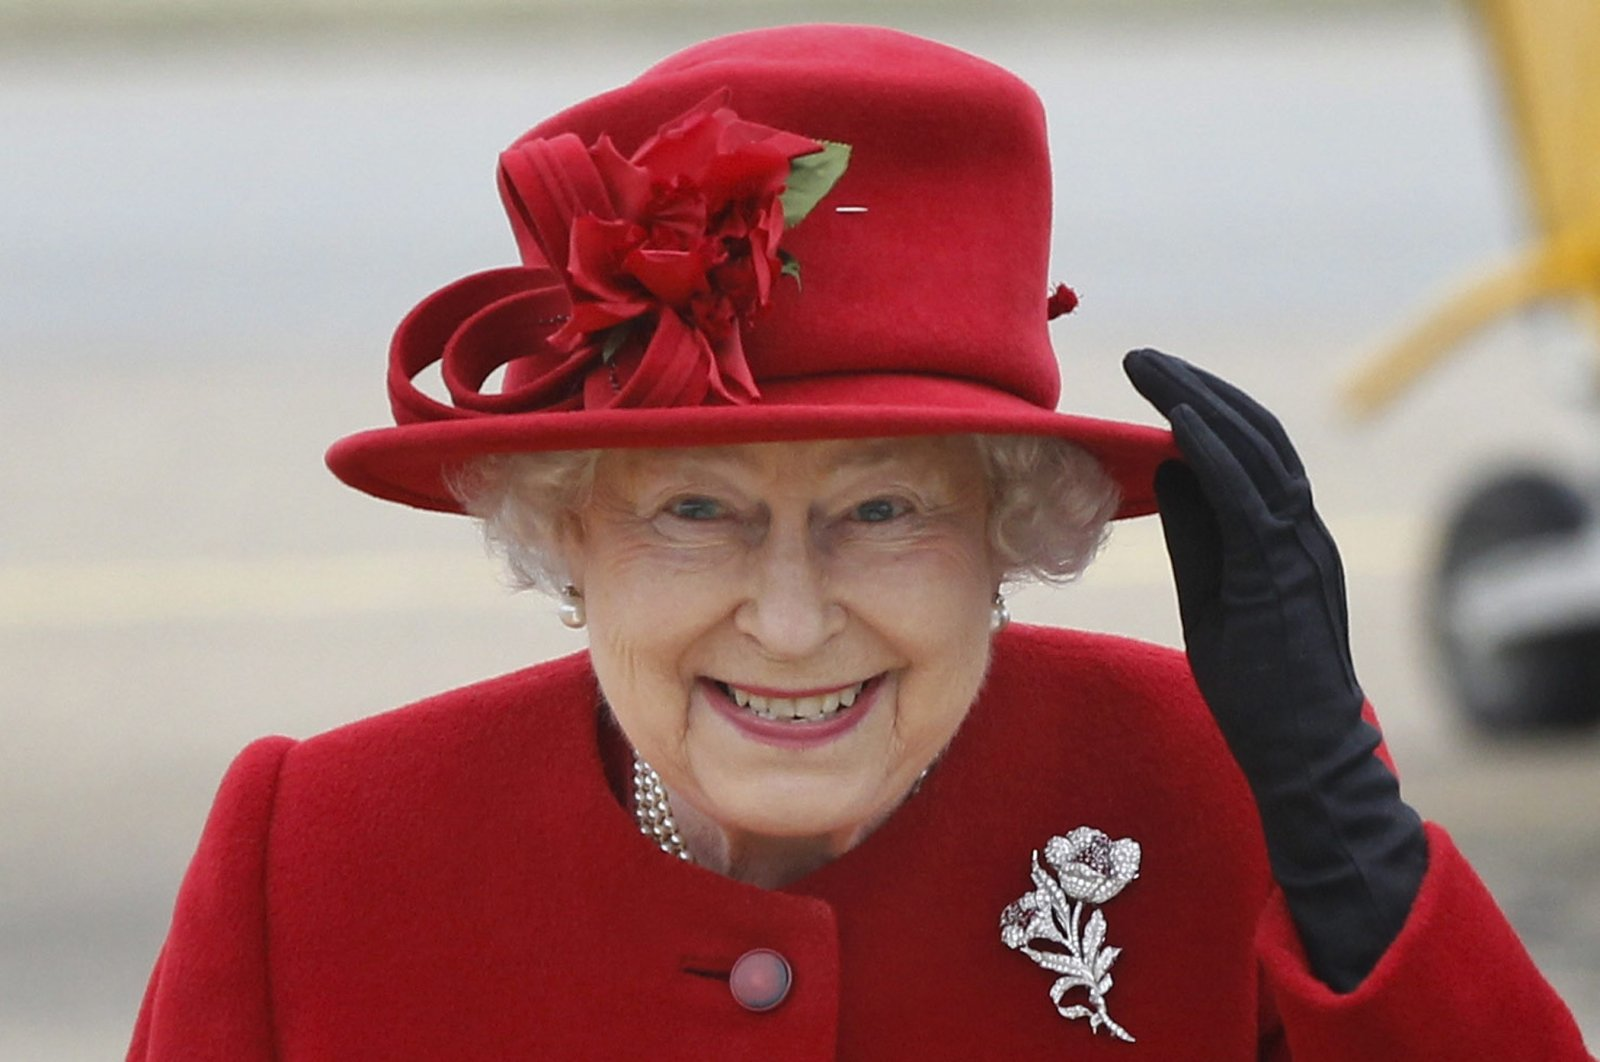 Queen Elizabeth II holds on to her hat in high winds during a visit to RAF Valley where Prince William is stationed as a search and rescue helicopter pilot in Holyhead, United Kingdom, April 1, 2011. (Getty Images)